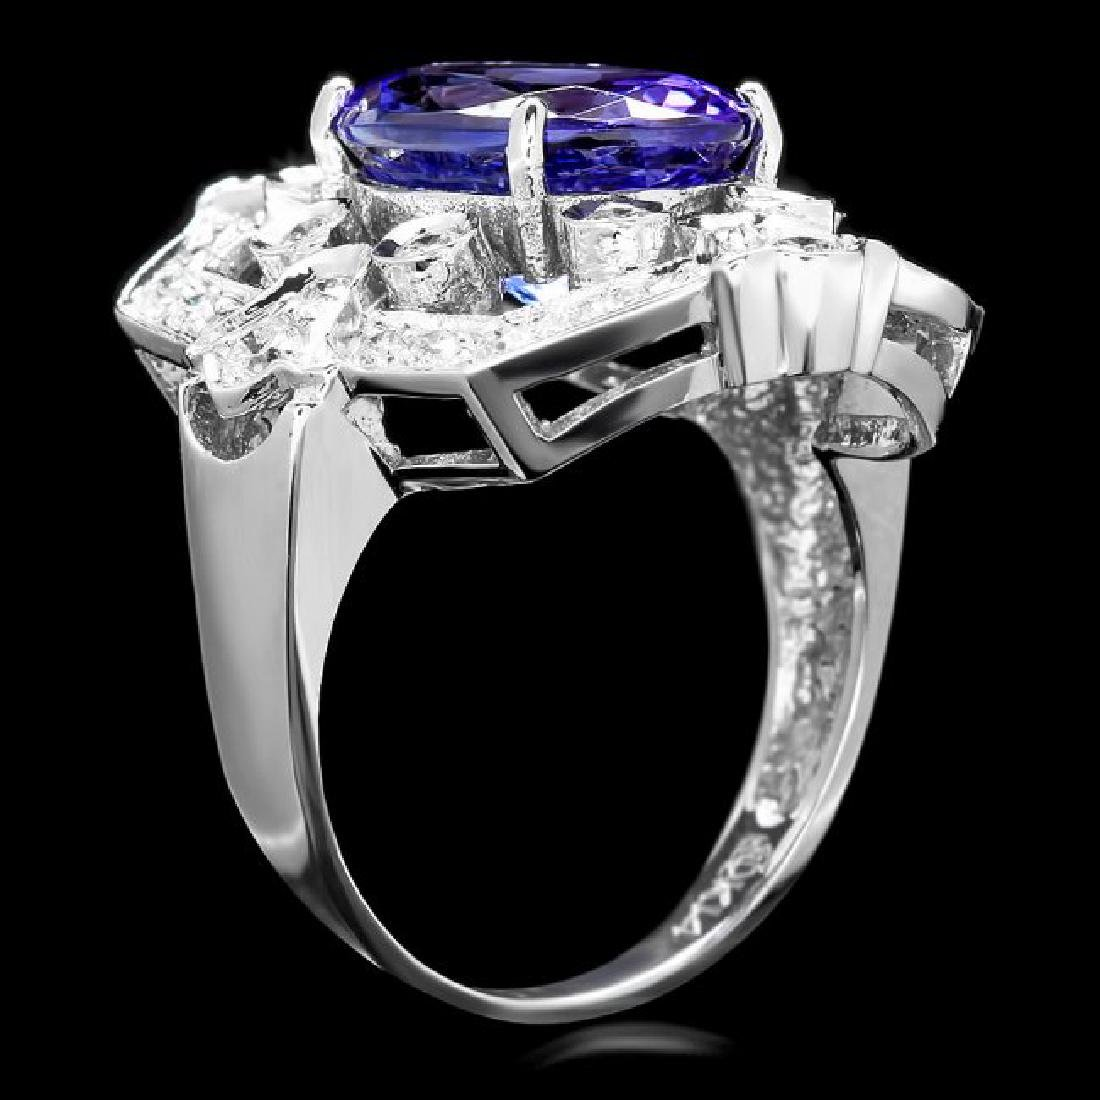 14k Gold 5.50ct Tanzanite 1.00ct Diamond Ring - 3